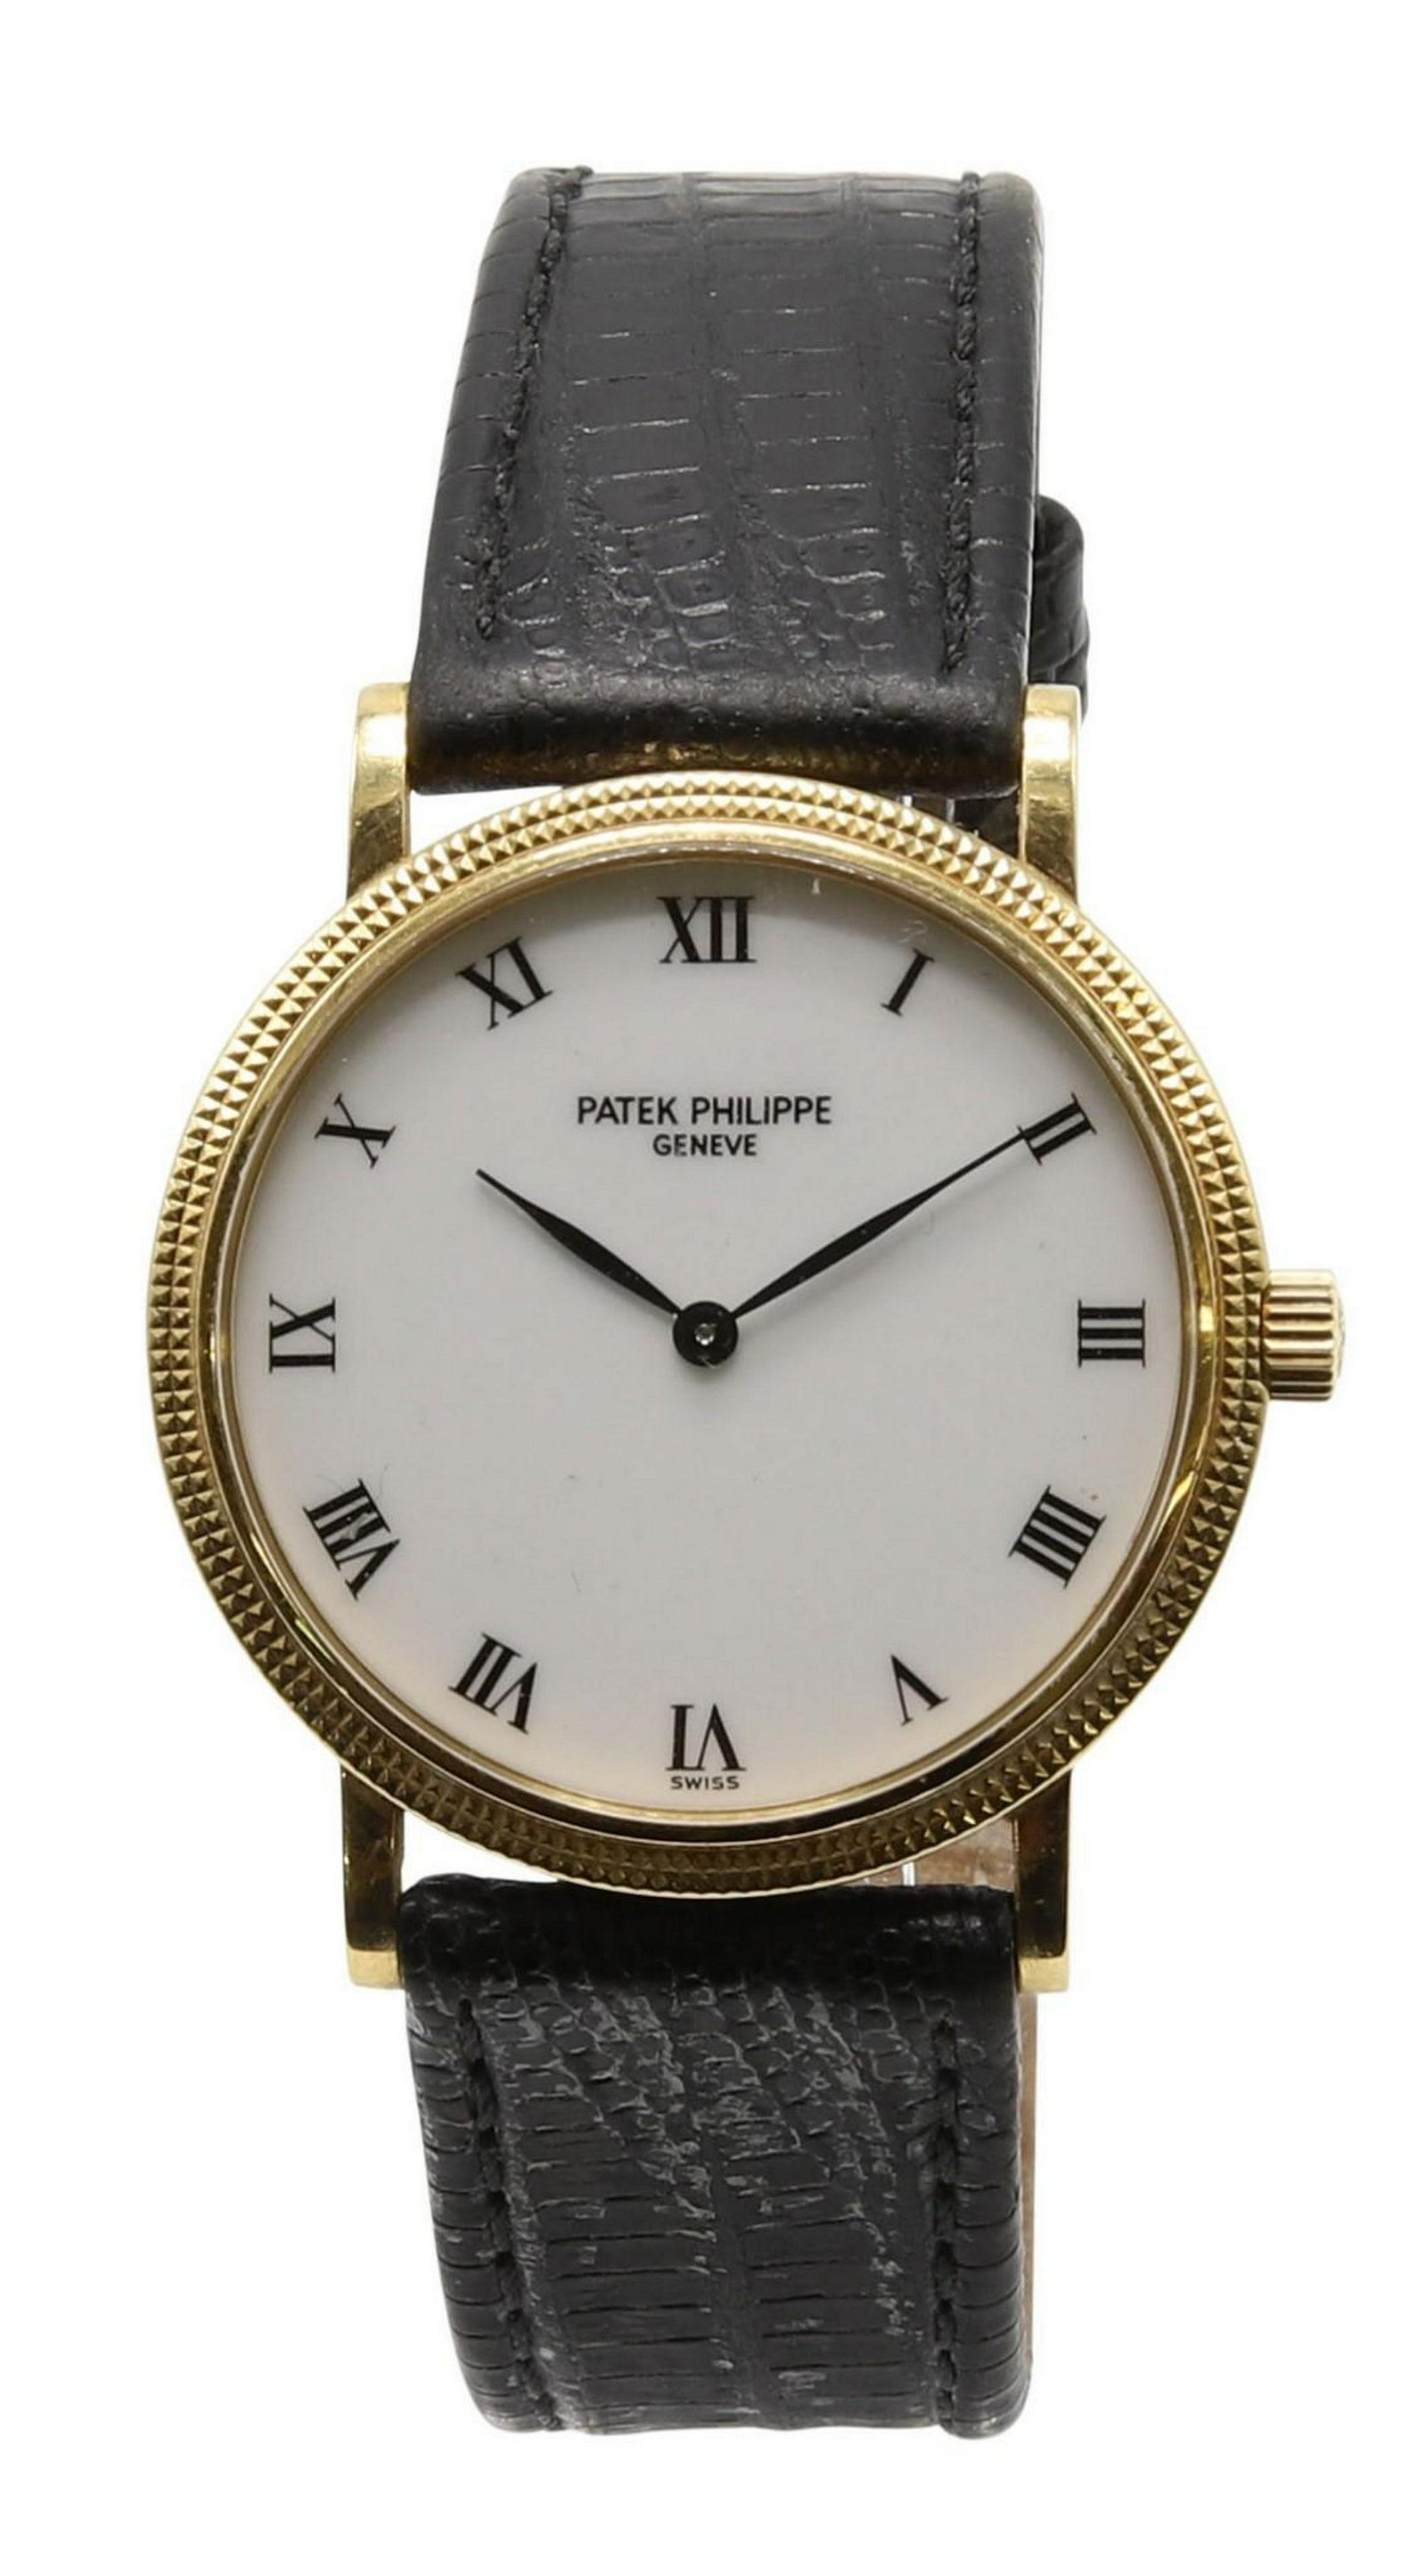 Patek Philippe Calatrava 18K Gold Wrist Watch